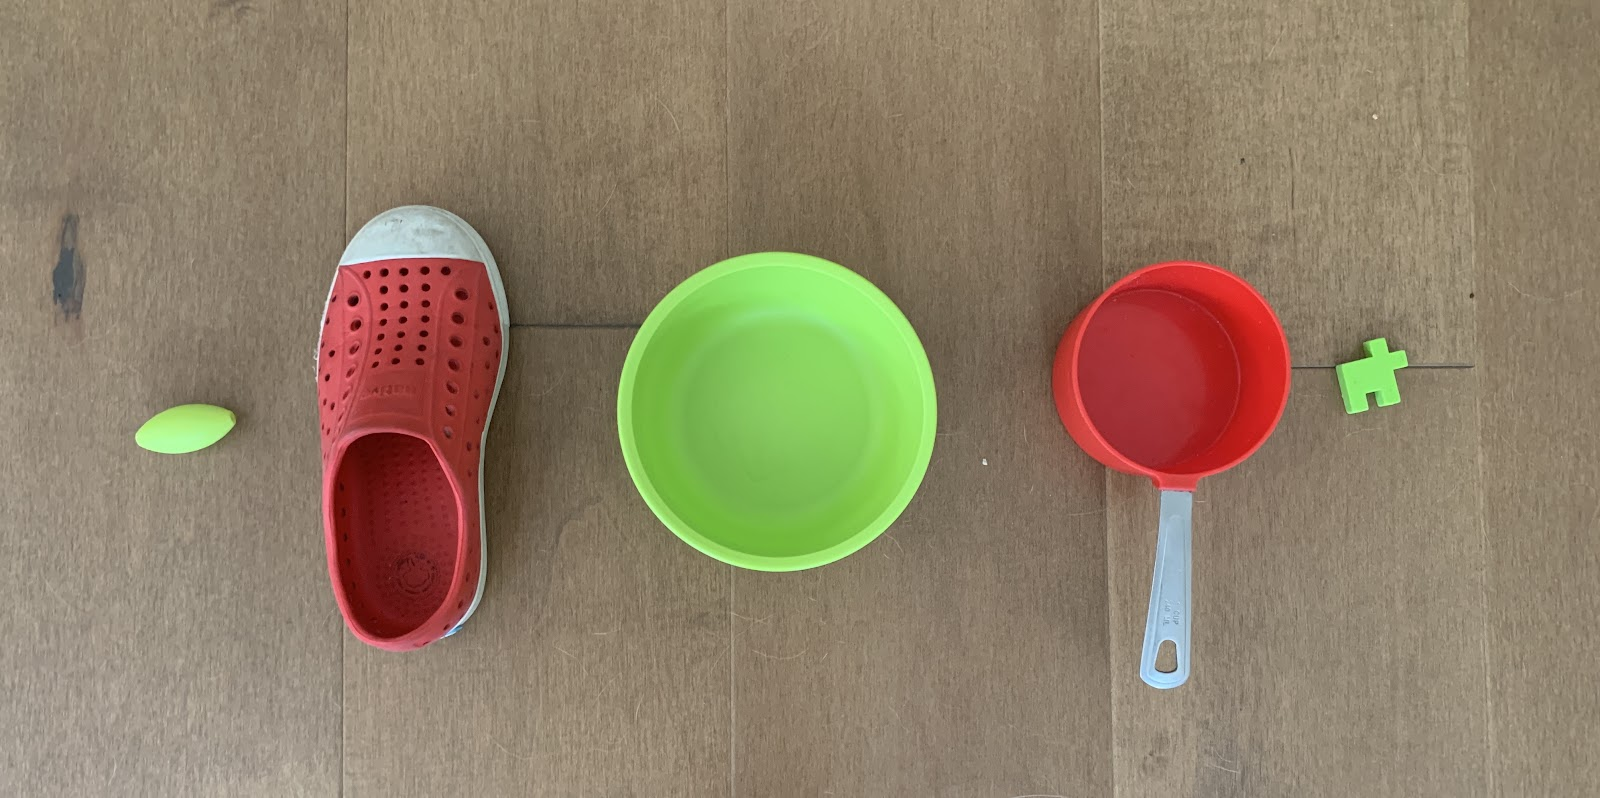 A green bead. A red shoe. A green bowl. A red measuring cup. A green puzzle piece.